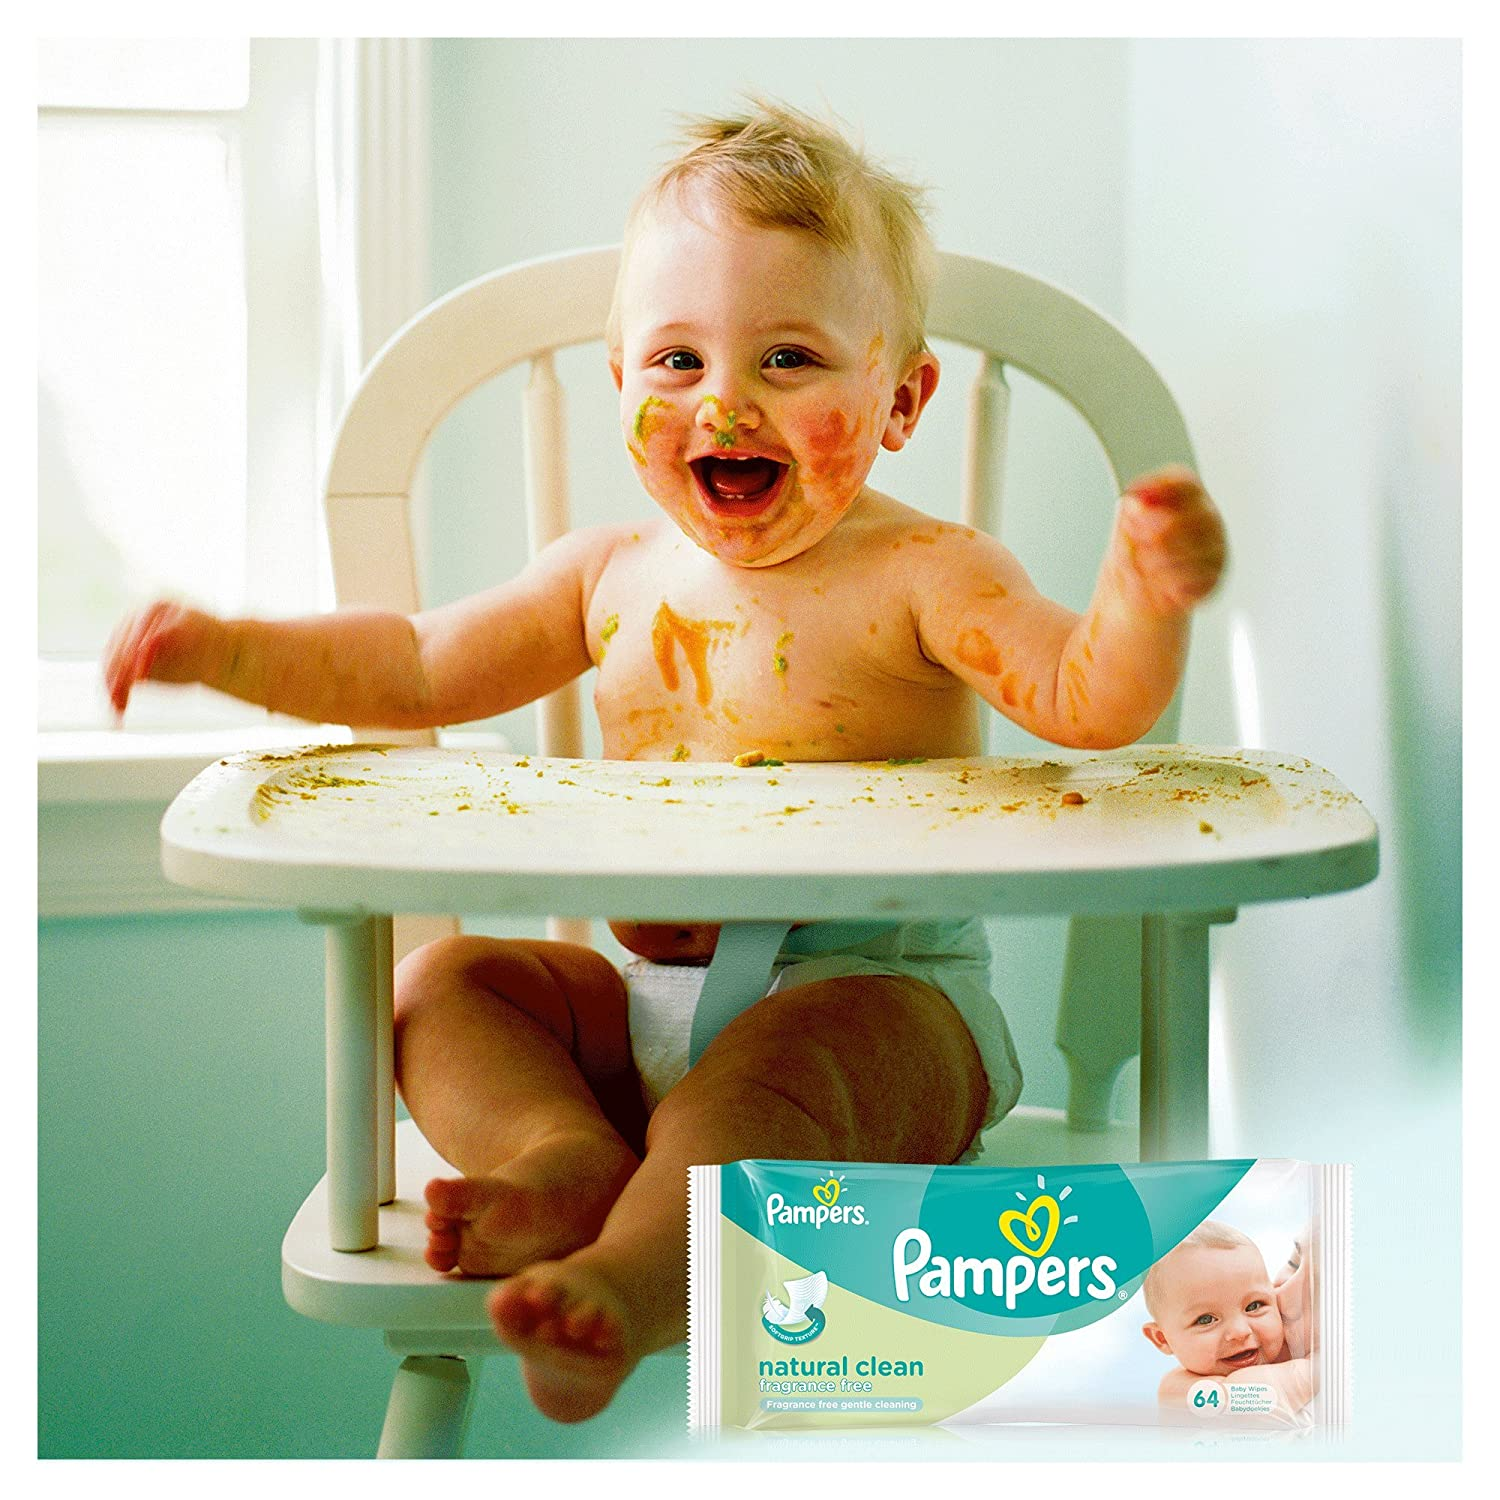 Pampers Natural Clean Wipes - 12 x Packs de 64 (768 toallitas húmedas): Amazon.es: Salud y cuidado personal